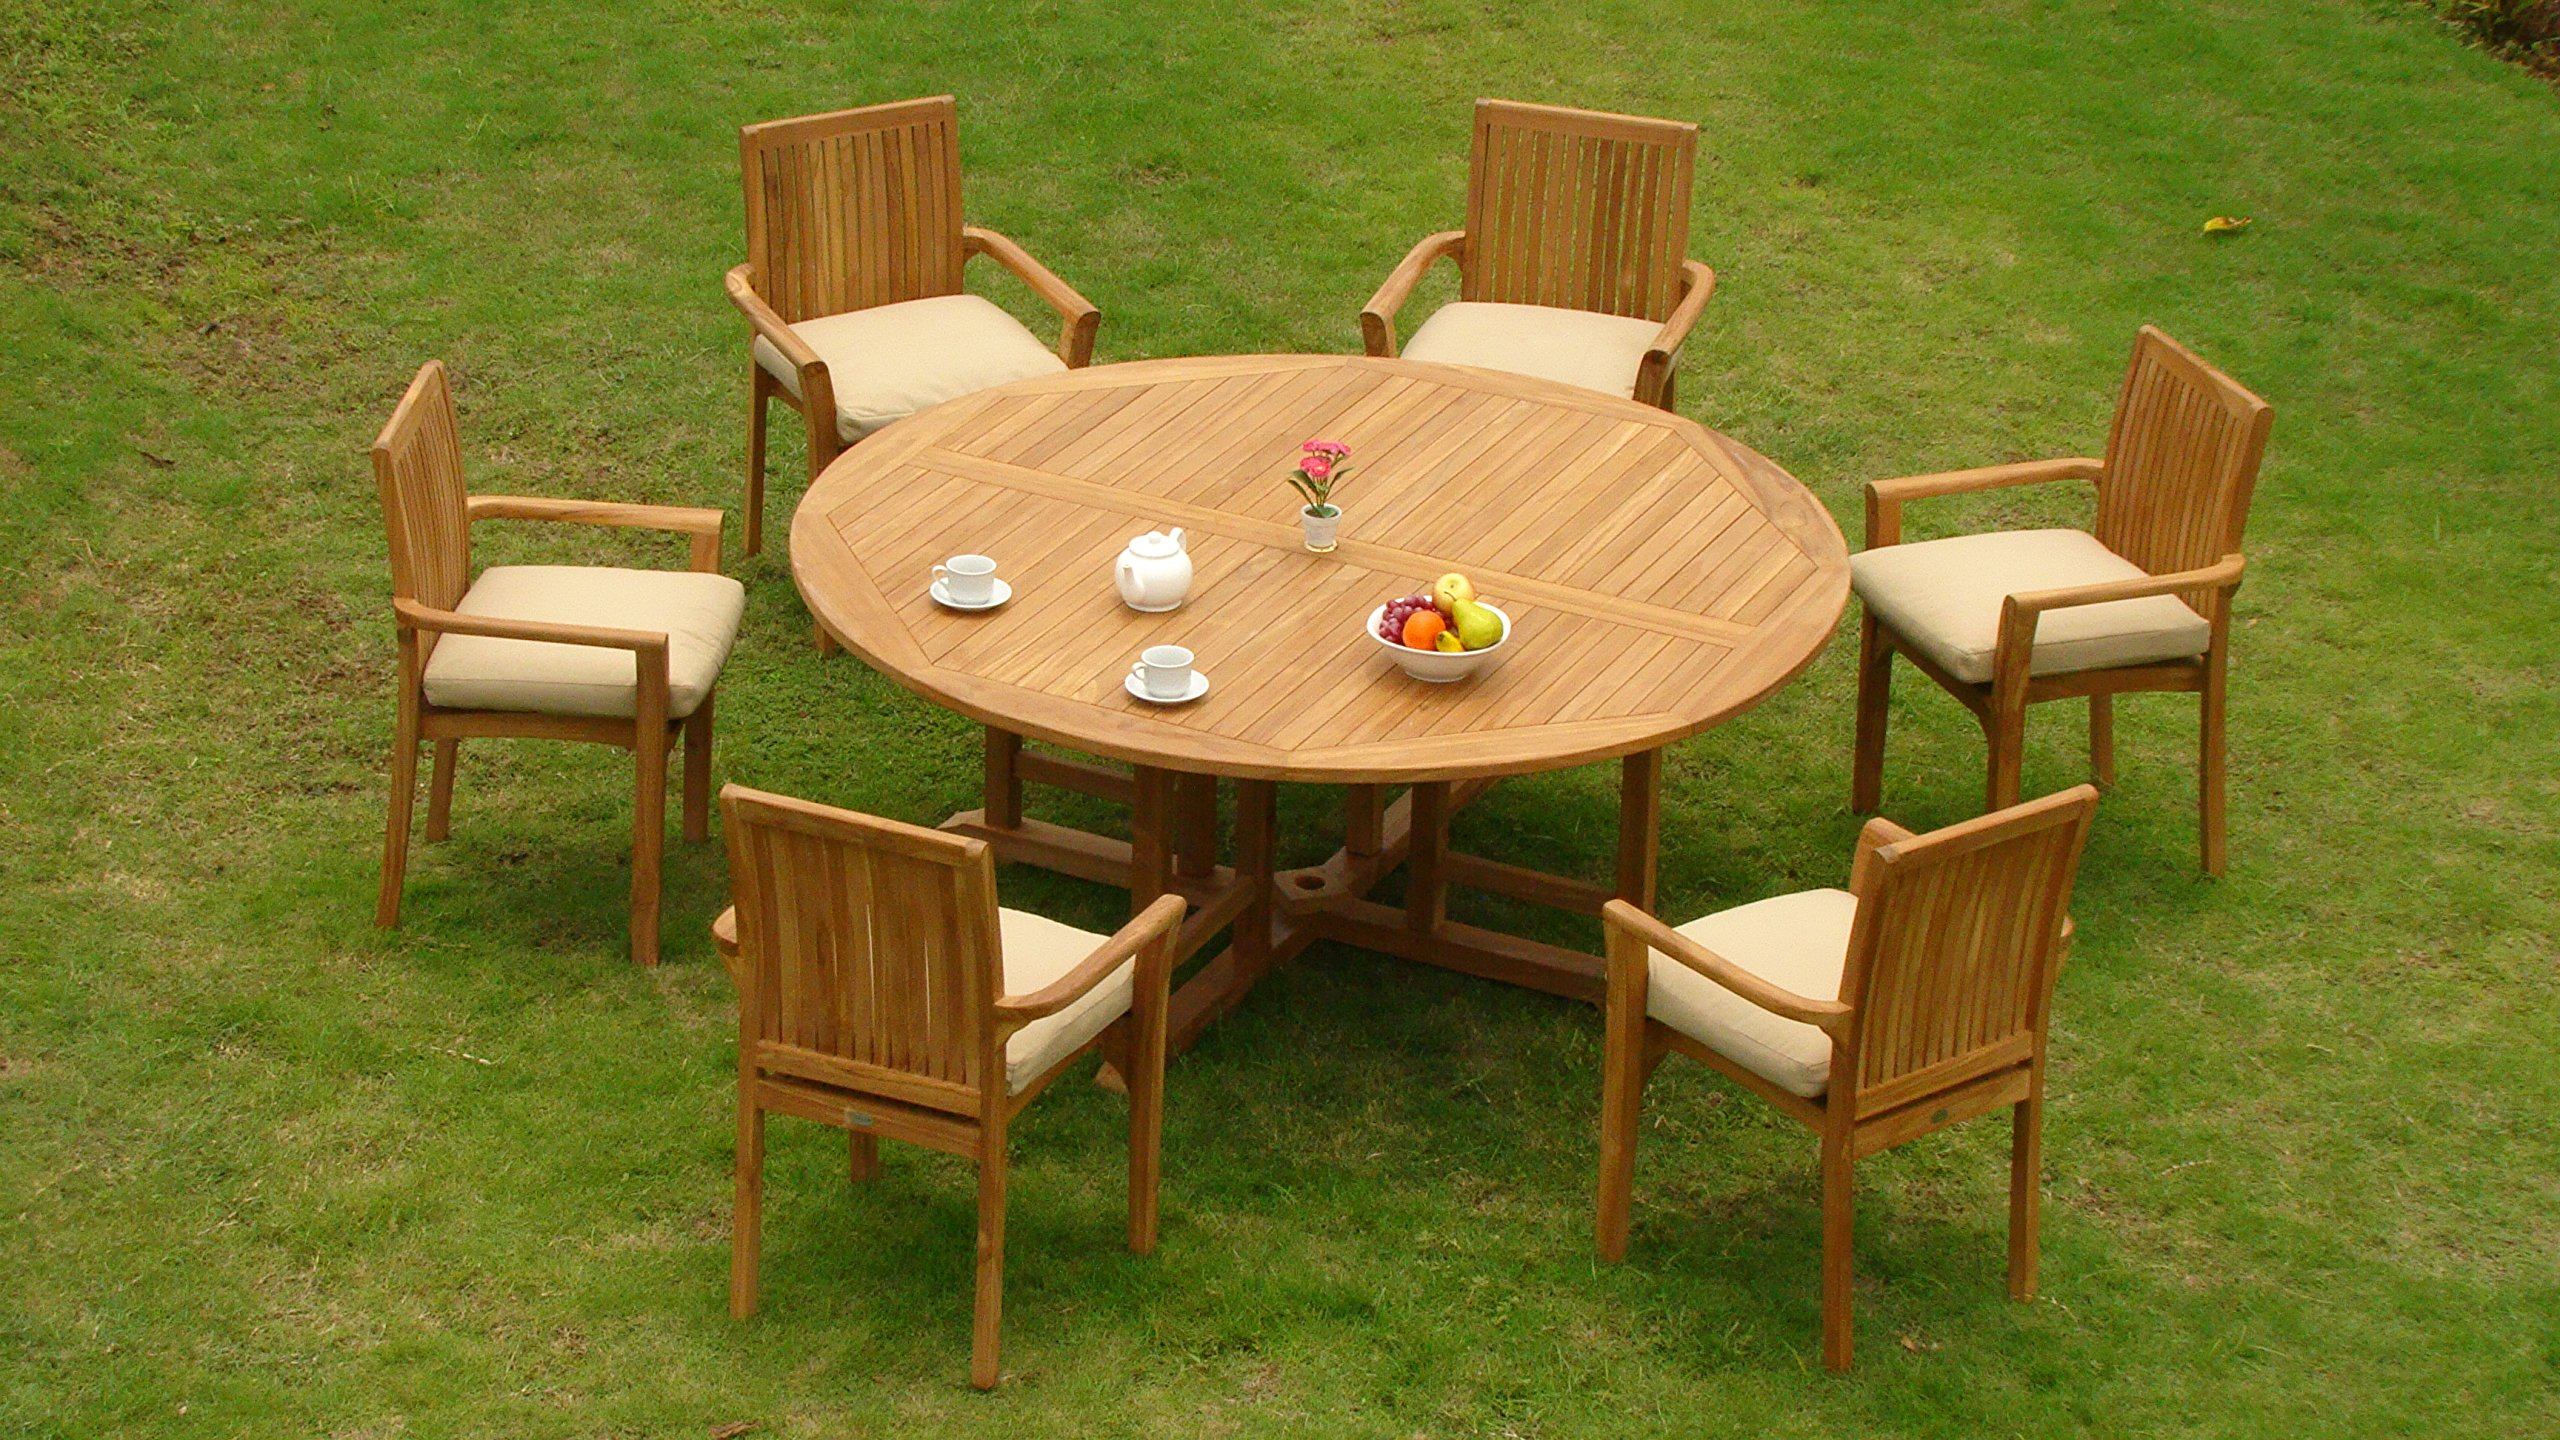 """New 9 Pc Luxurious Grade-A Teak Dining Set -72"""" Round Table And 8 Lua Stacking Arm Chairs #WHDSLU7 - Teak wood is an extremely dense course grained hardwood and is widely known for its durability. ADD SUNBRELLA FABRIC CUSHIONS BY SEARCHING ASIN """"B01I4CC166"""" or """"Wholesaleteak Dining Cushion"""" ON AMAZON, CUSTOM MADE FOR THESE STYLE CHAIRS Table Dimension: 72"""" Round Table, 30.5"""" H , 2"""" Umbrella Hole is in the center of the table. - patio-furniture, dining-sets-patio-funiture, patio - 91bOc3lyl3L -"""